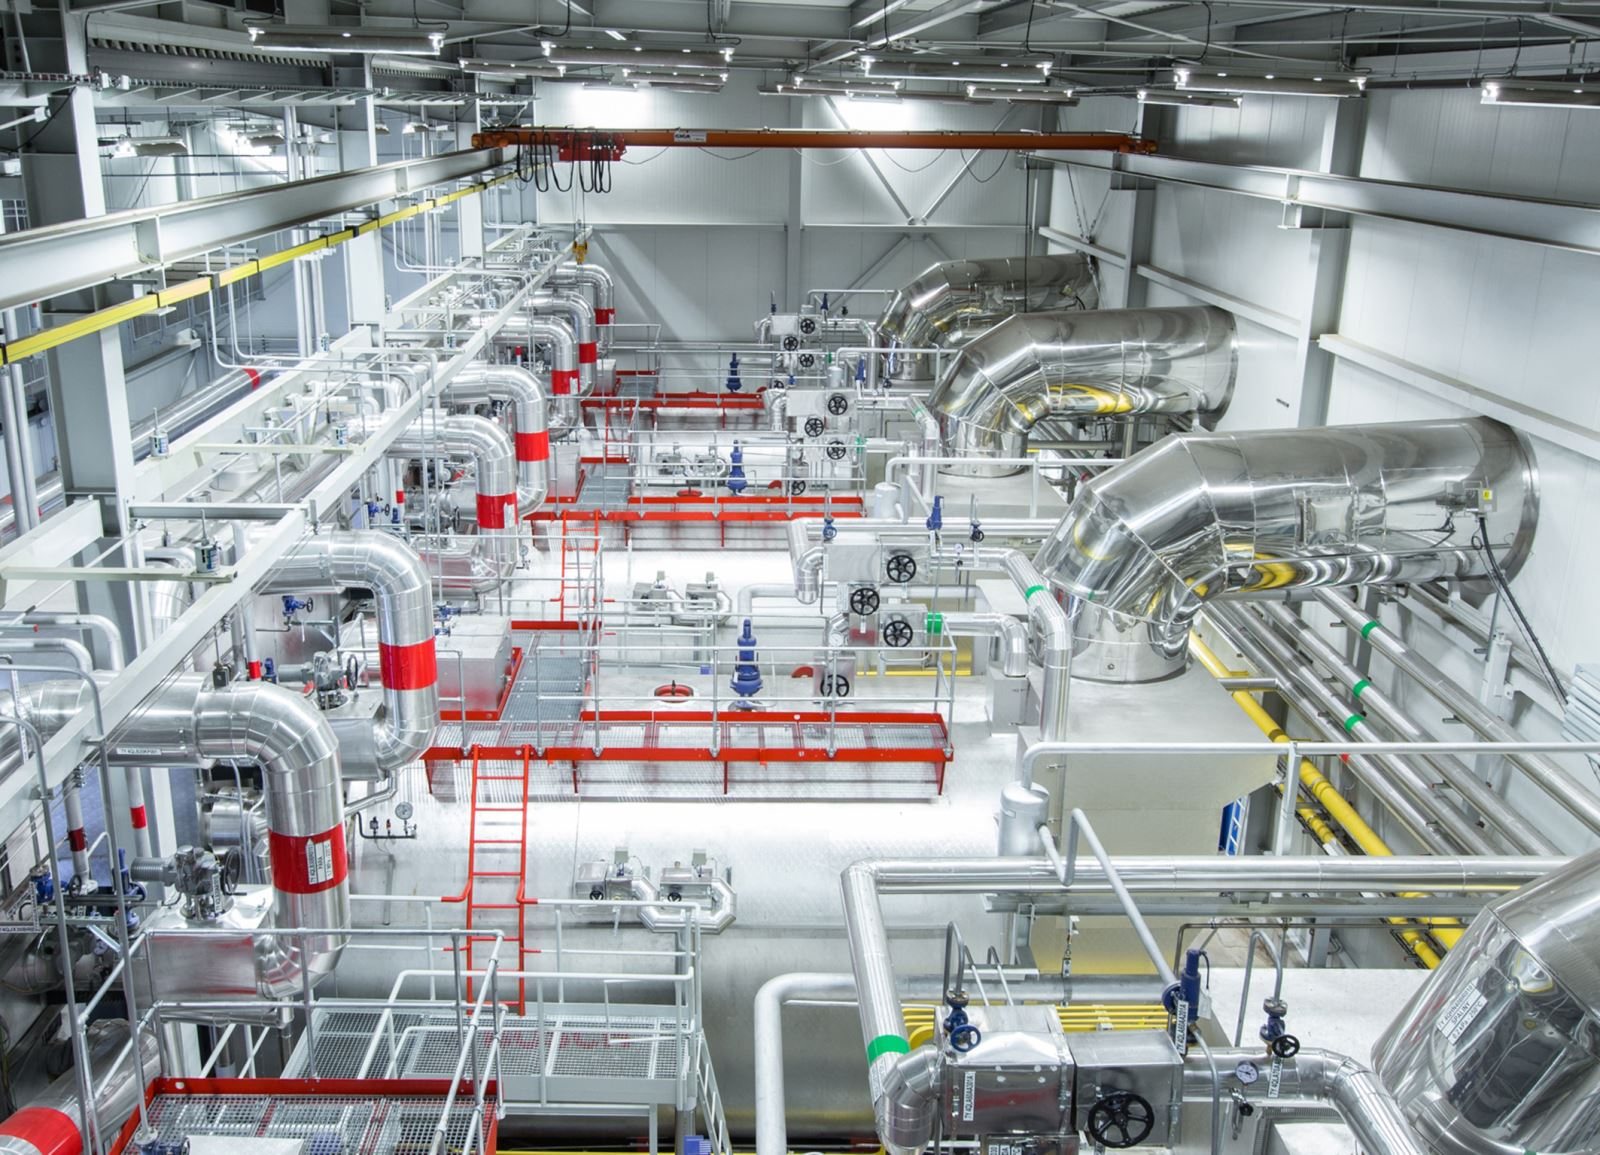 Bosch Boilers At Ledvice Power Plant 167 Tons Of Superheated Steam ...